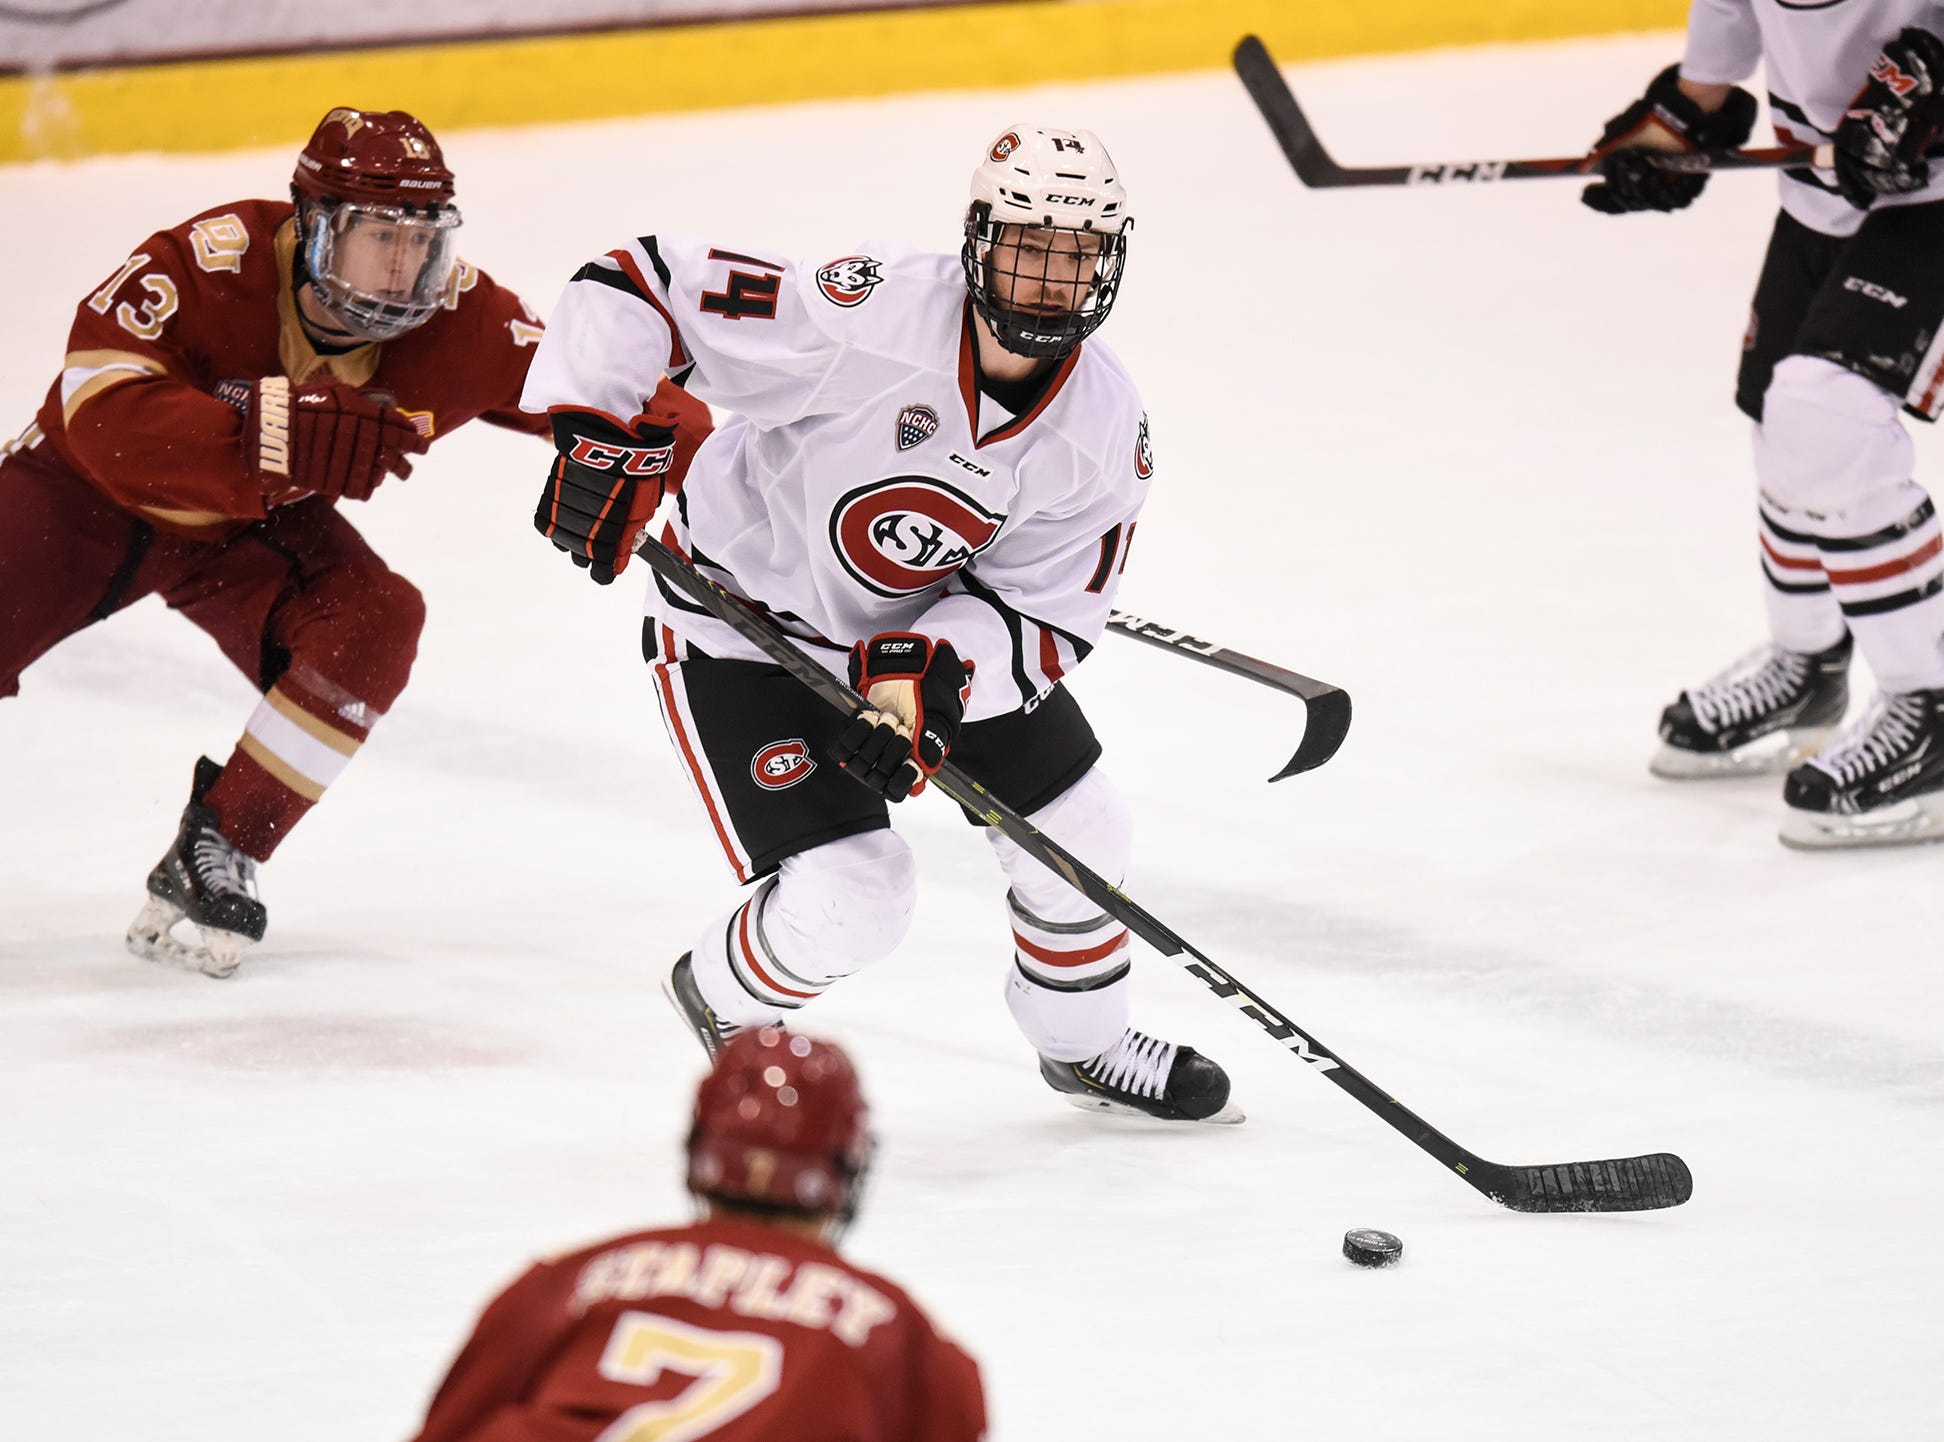 Patrick Newell skates with the puck during the first period of the Saturday, Nov. 10, game against the University of Denver at the Herb Brooks National Hockey Center in St. Cloud.